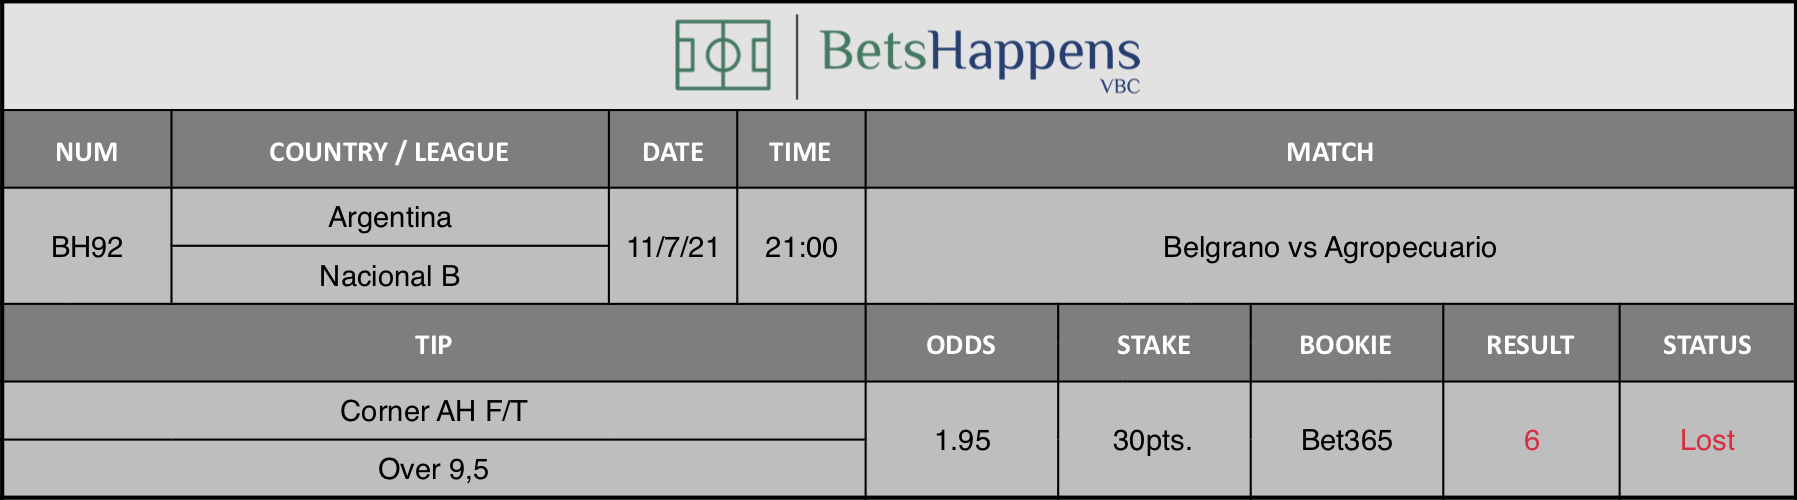 Results of our advice for the Belgrano vs Agropecuario match in which Corner AH F/T Over 9,5 is recommended.